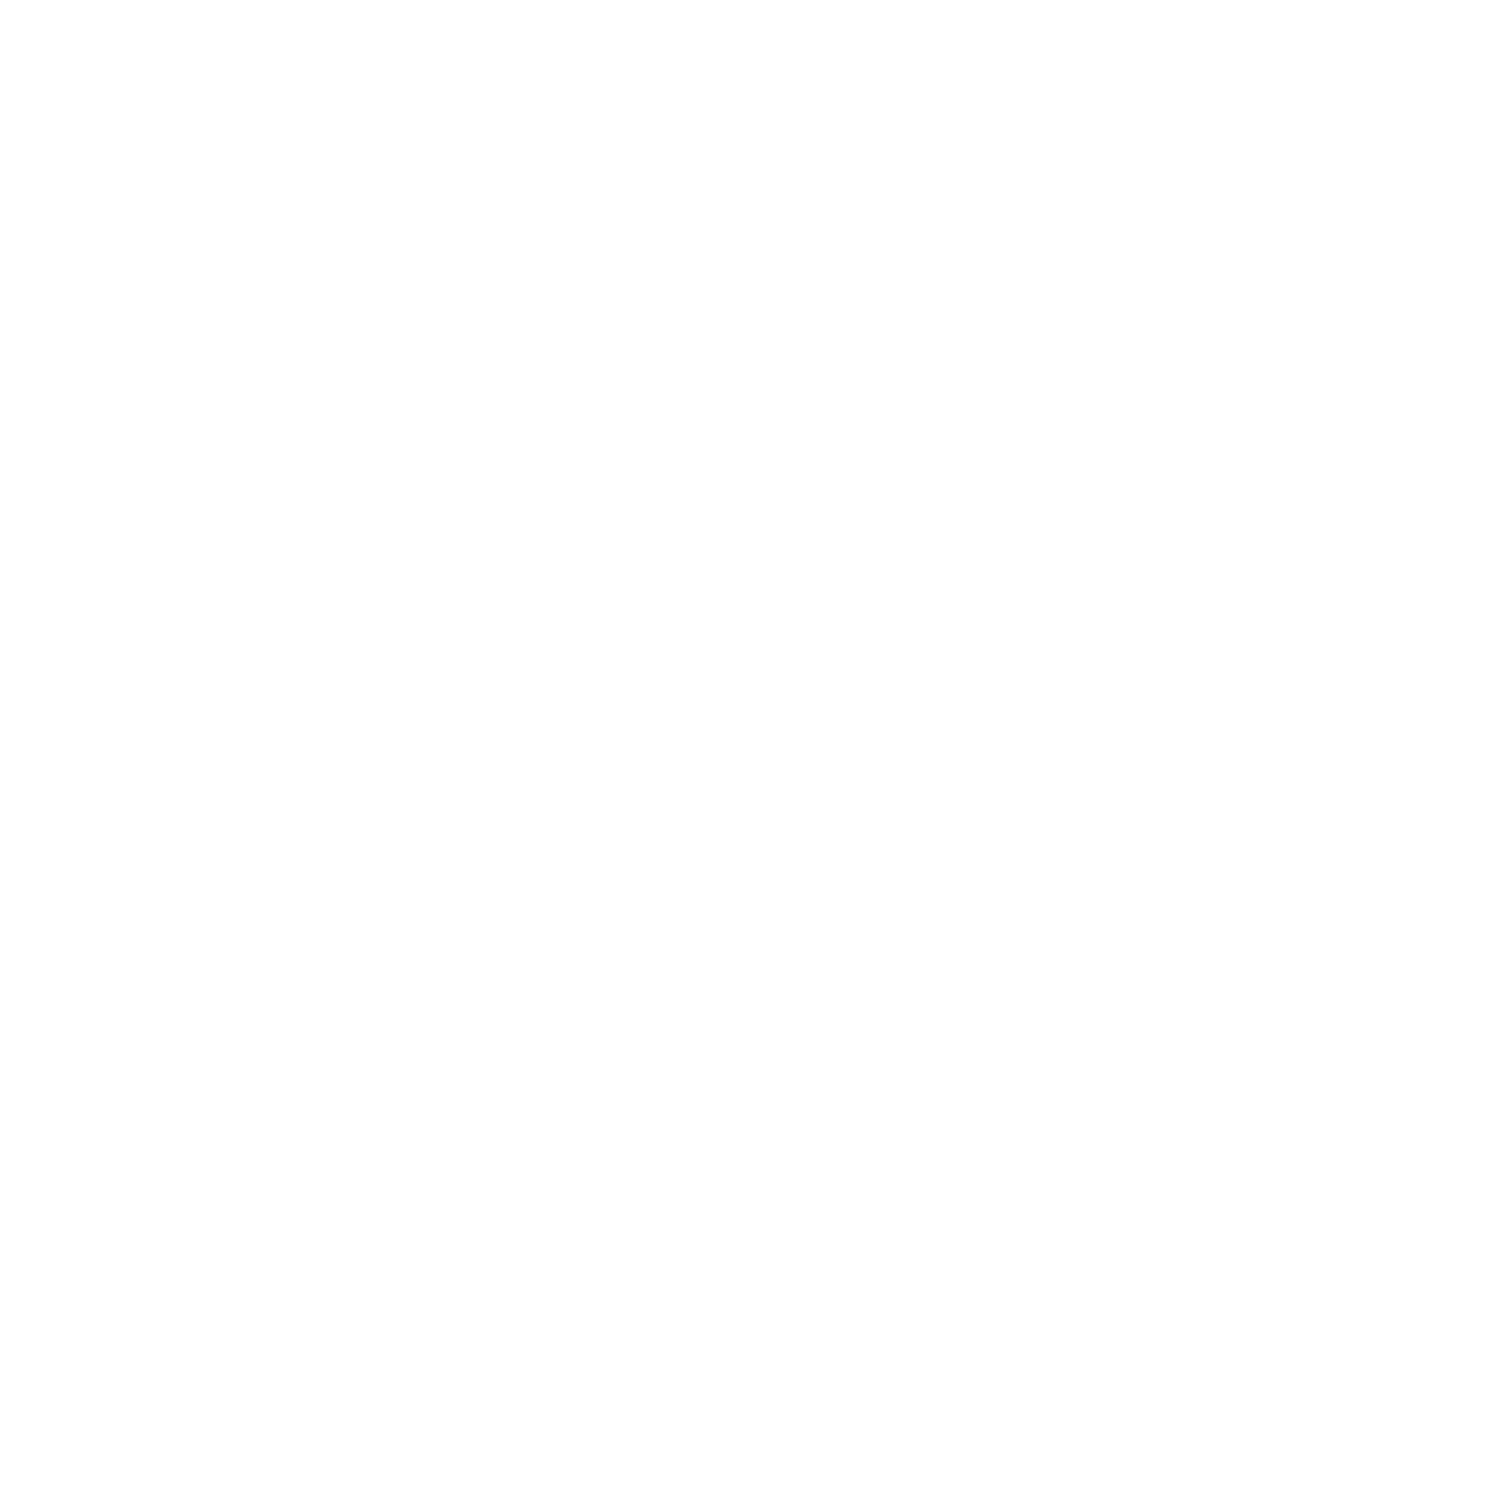 Country Elegance Garden & Gifts